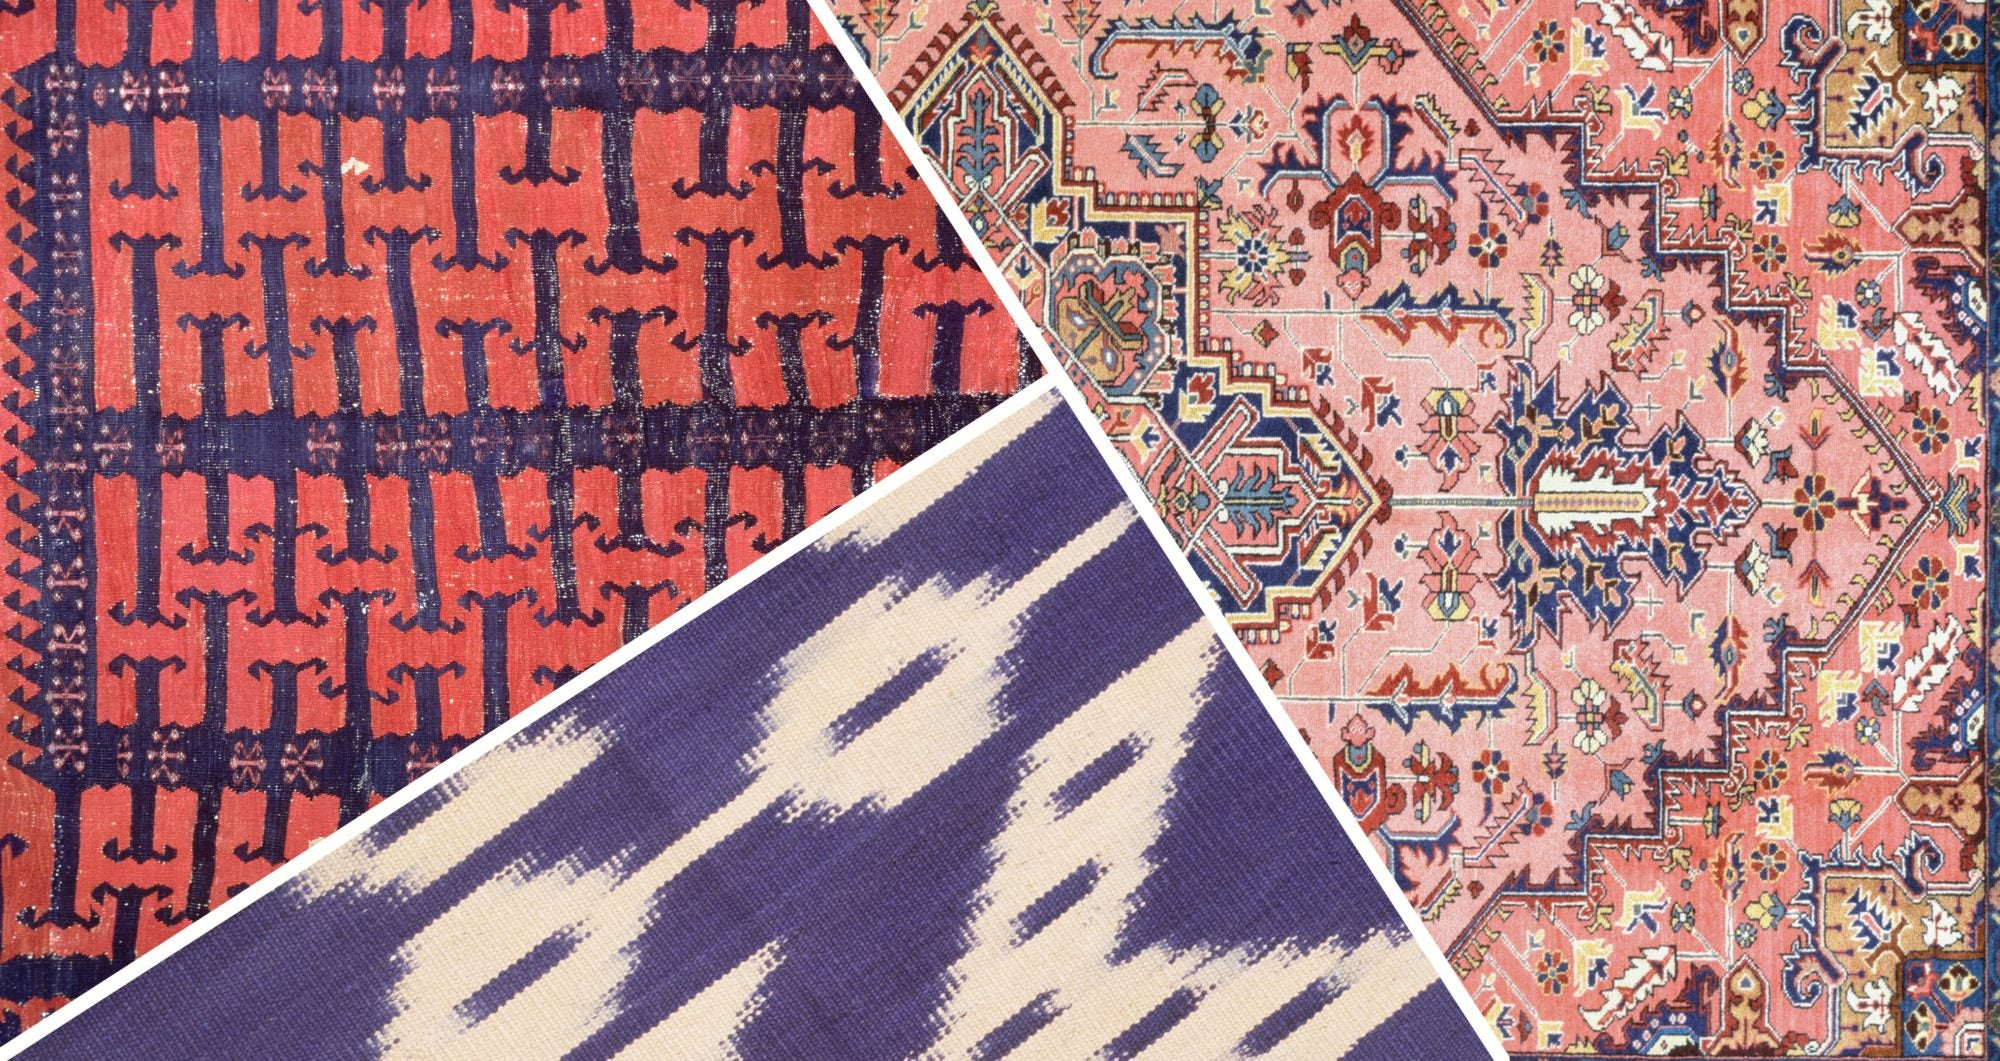 Persian rugs, oriental rugs, home decor, home accessories, rugs styles, 2021 best interior designers, design inspiration, design trends, studio mcgee, top designers, home decor inspiration, london rugs, rug collections